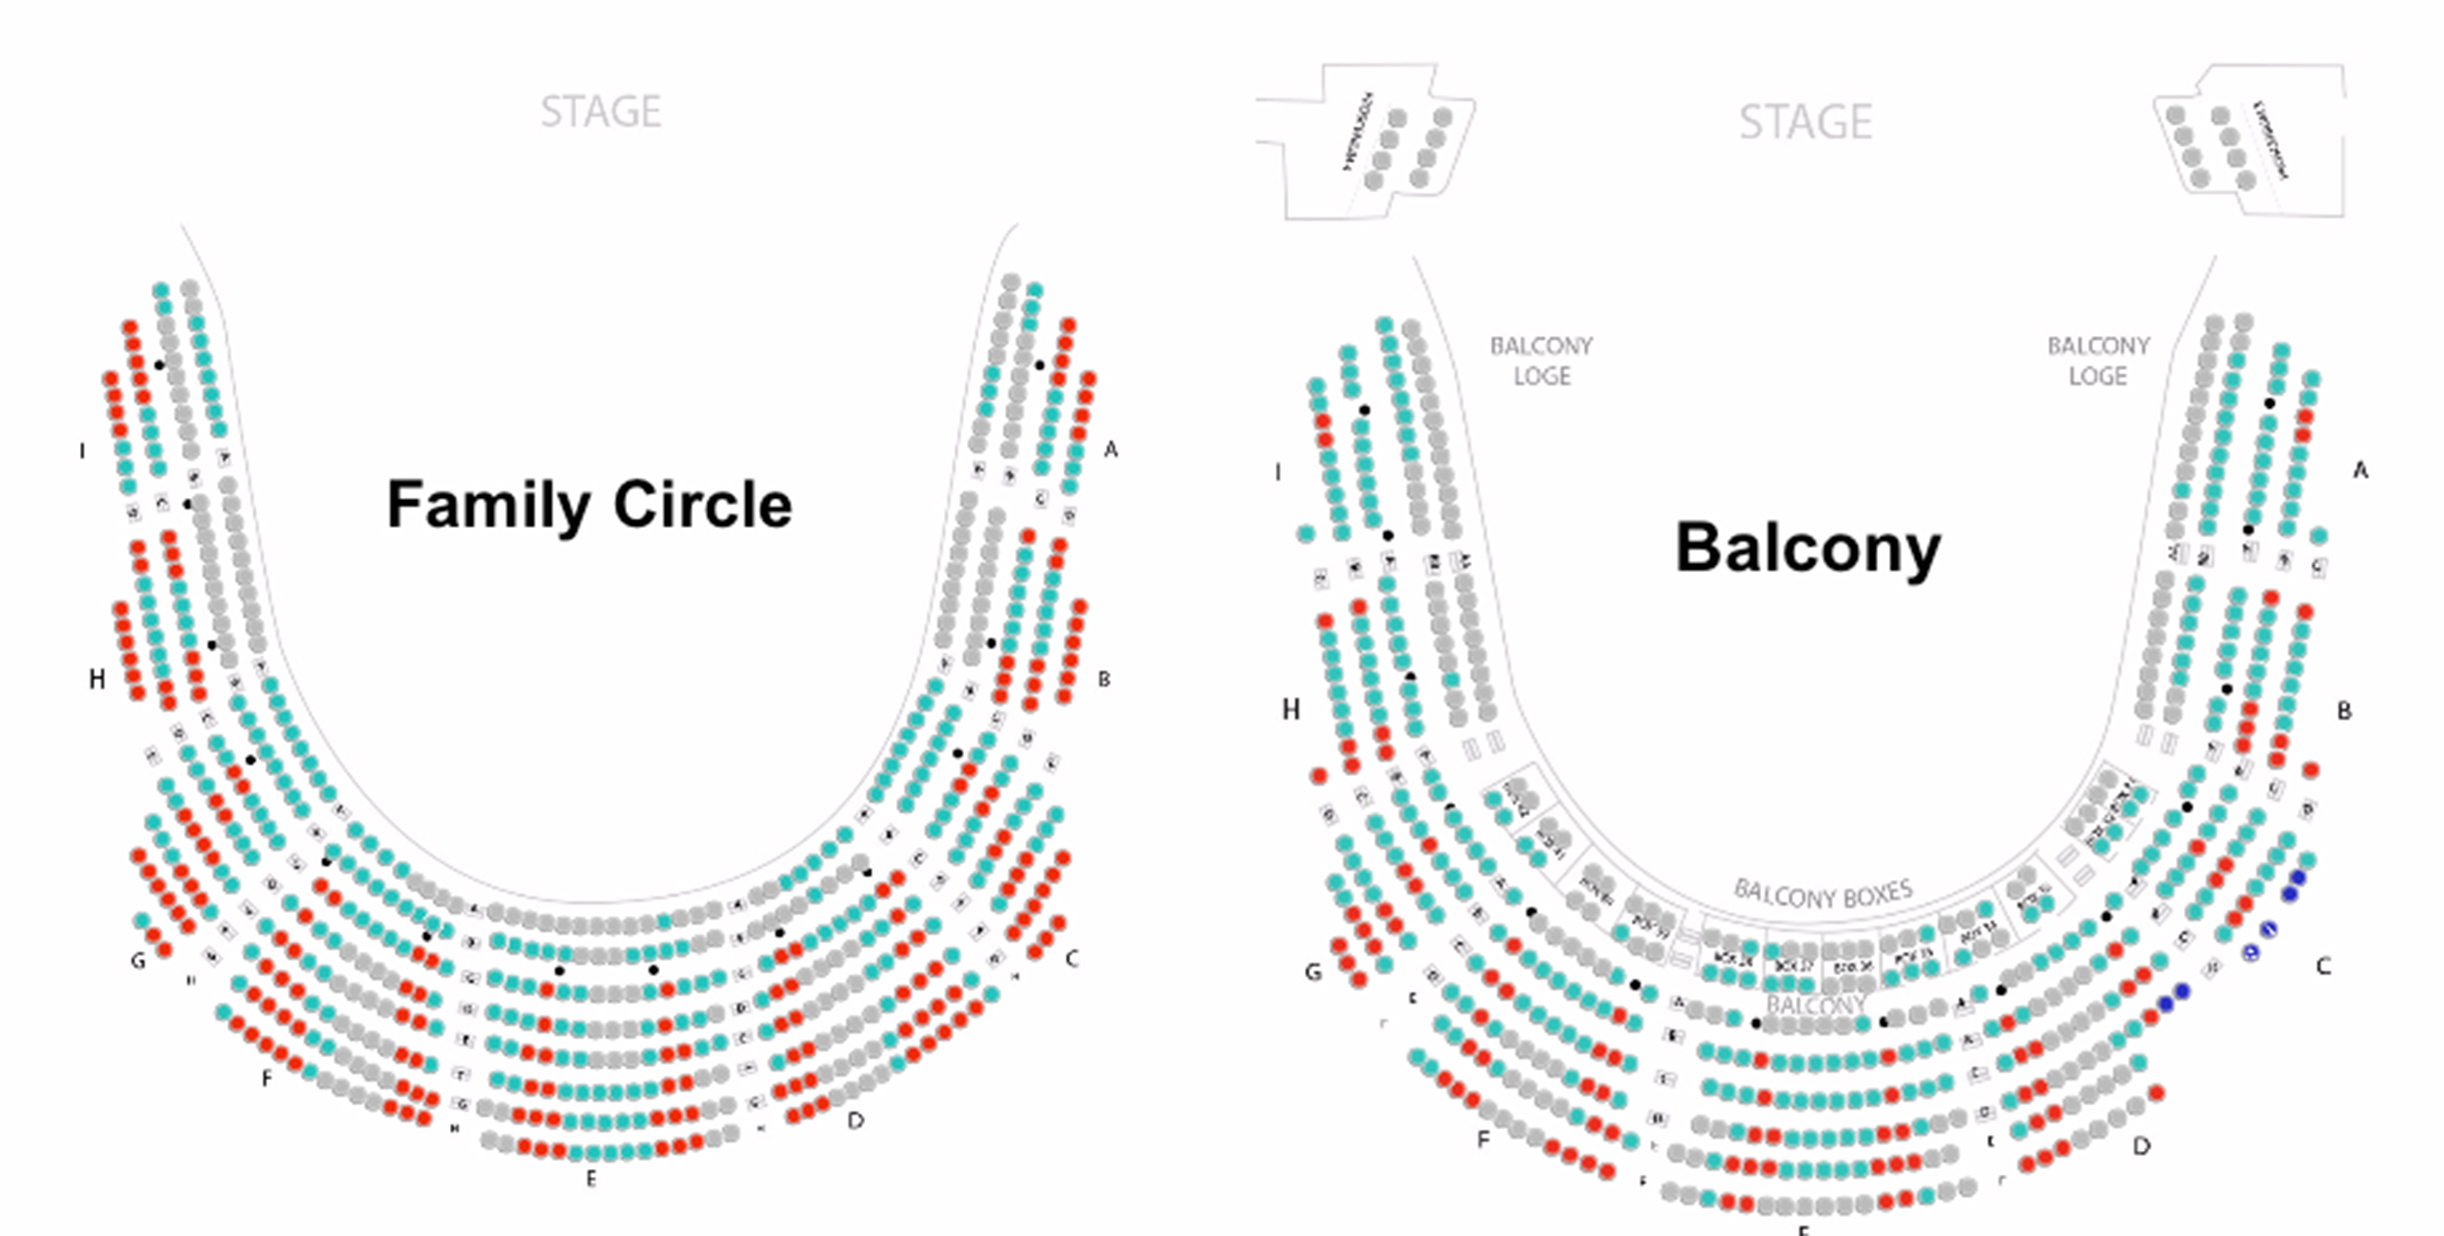 Academy of music philadelphia tickets schedule seating charts